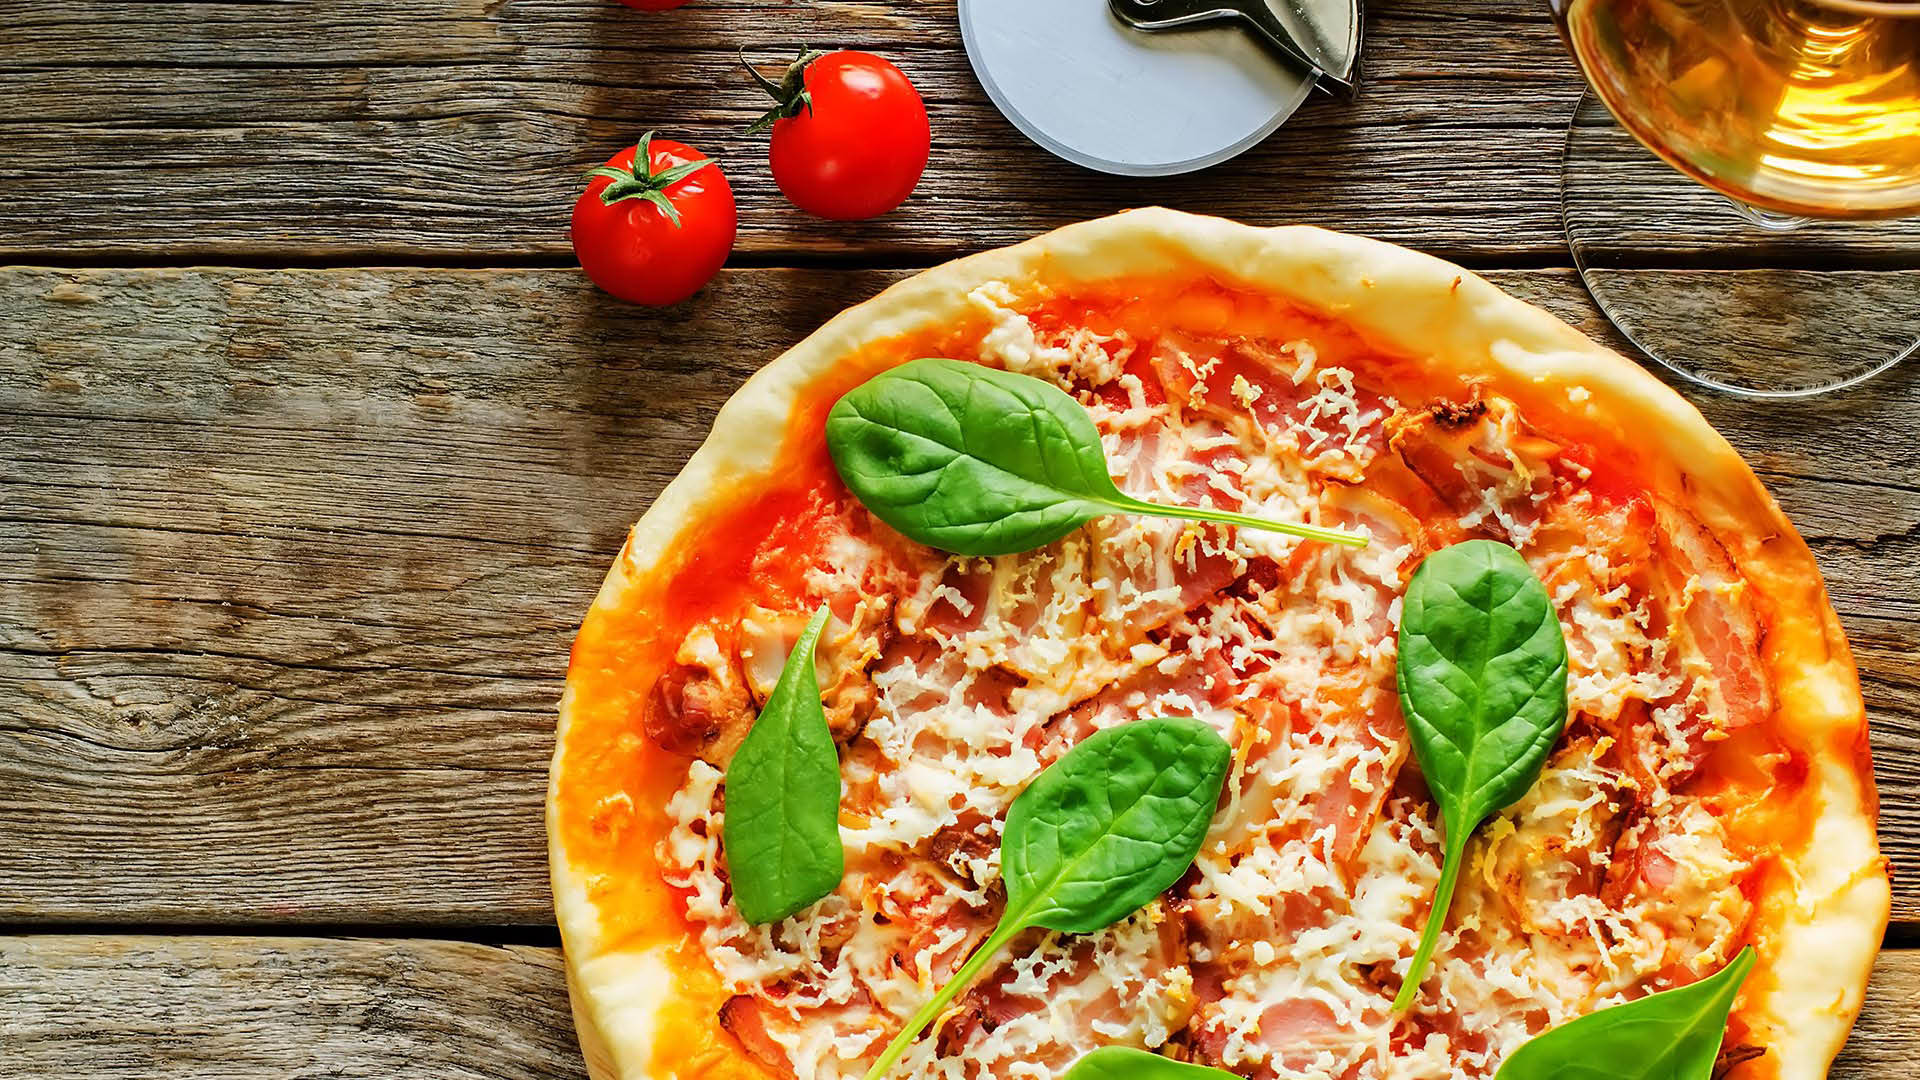 Italian pizza baked in a brick oven